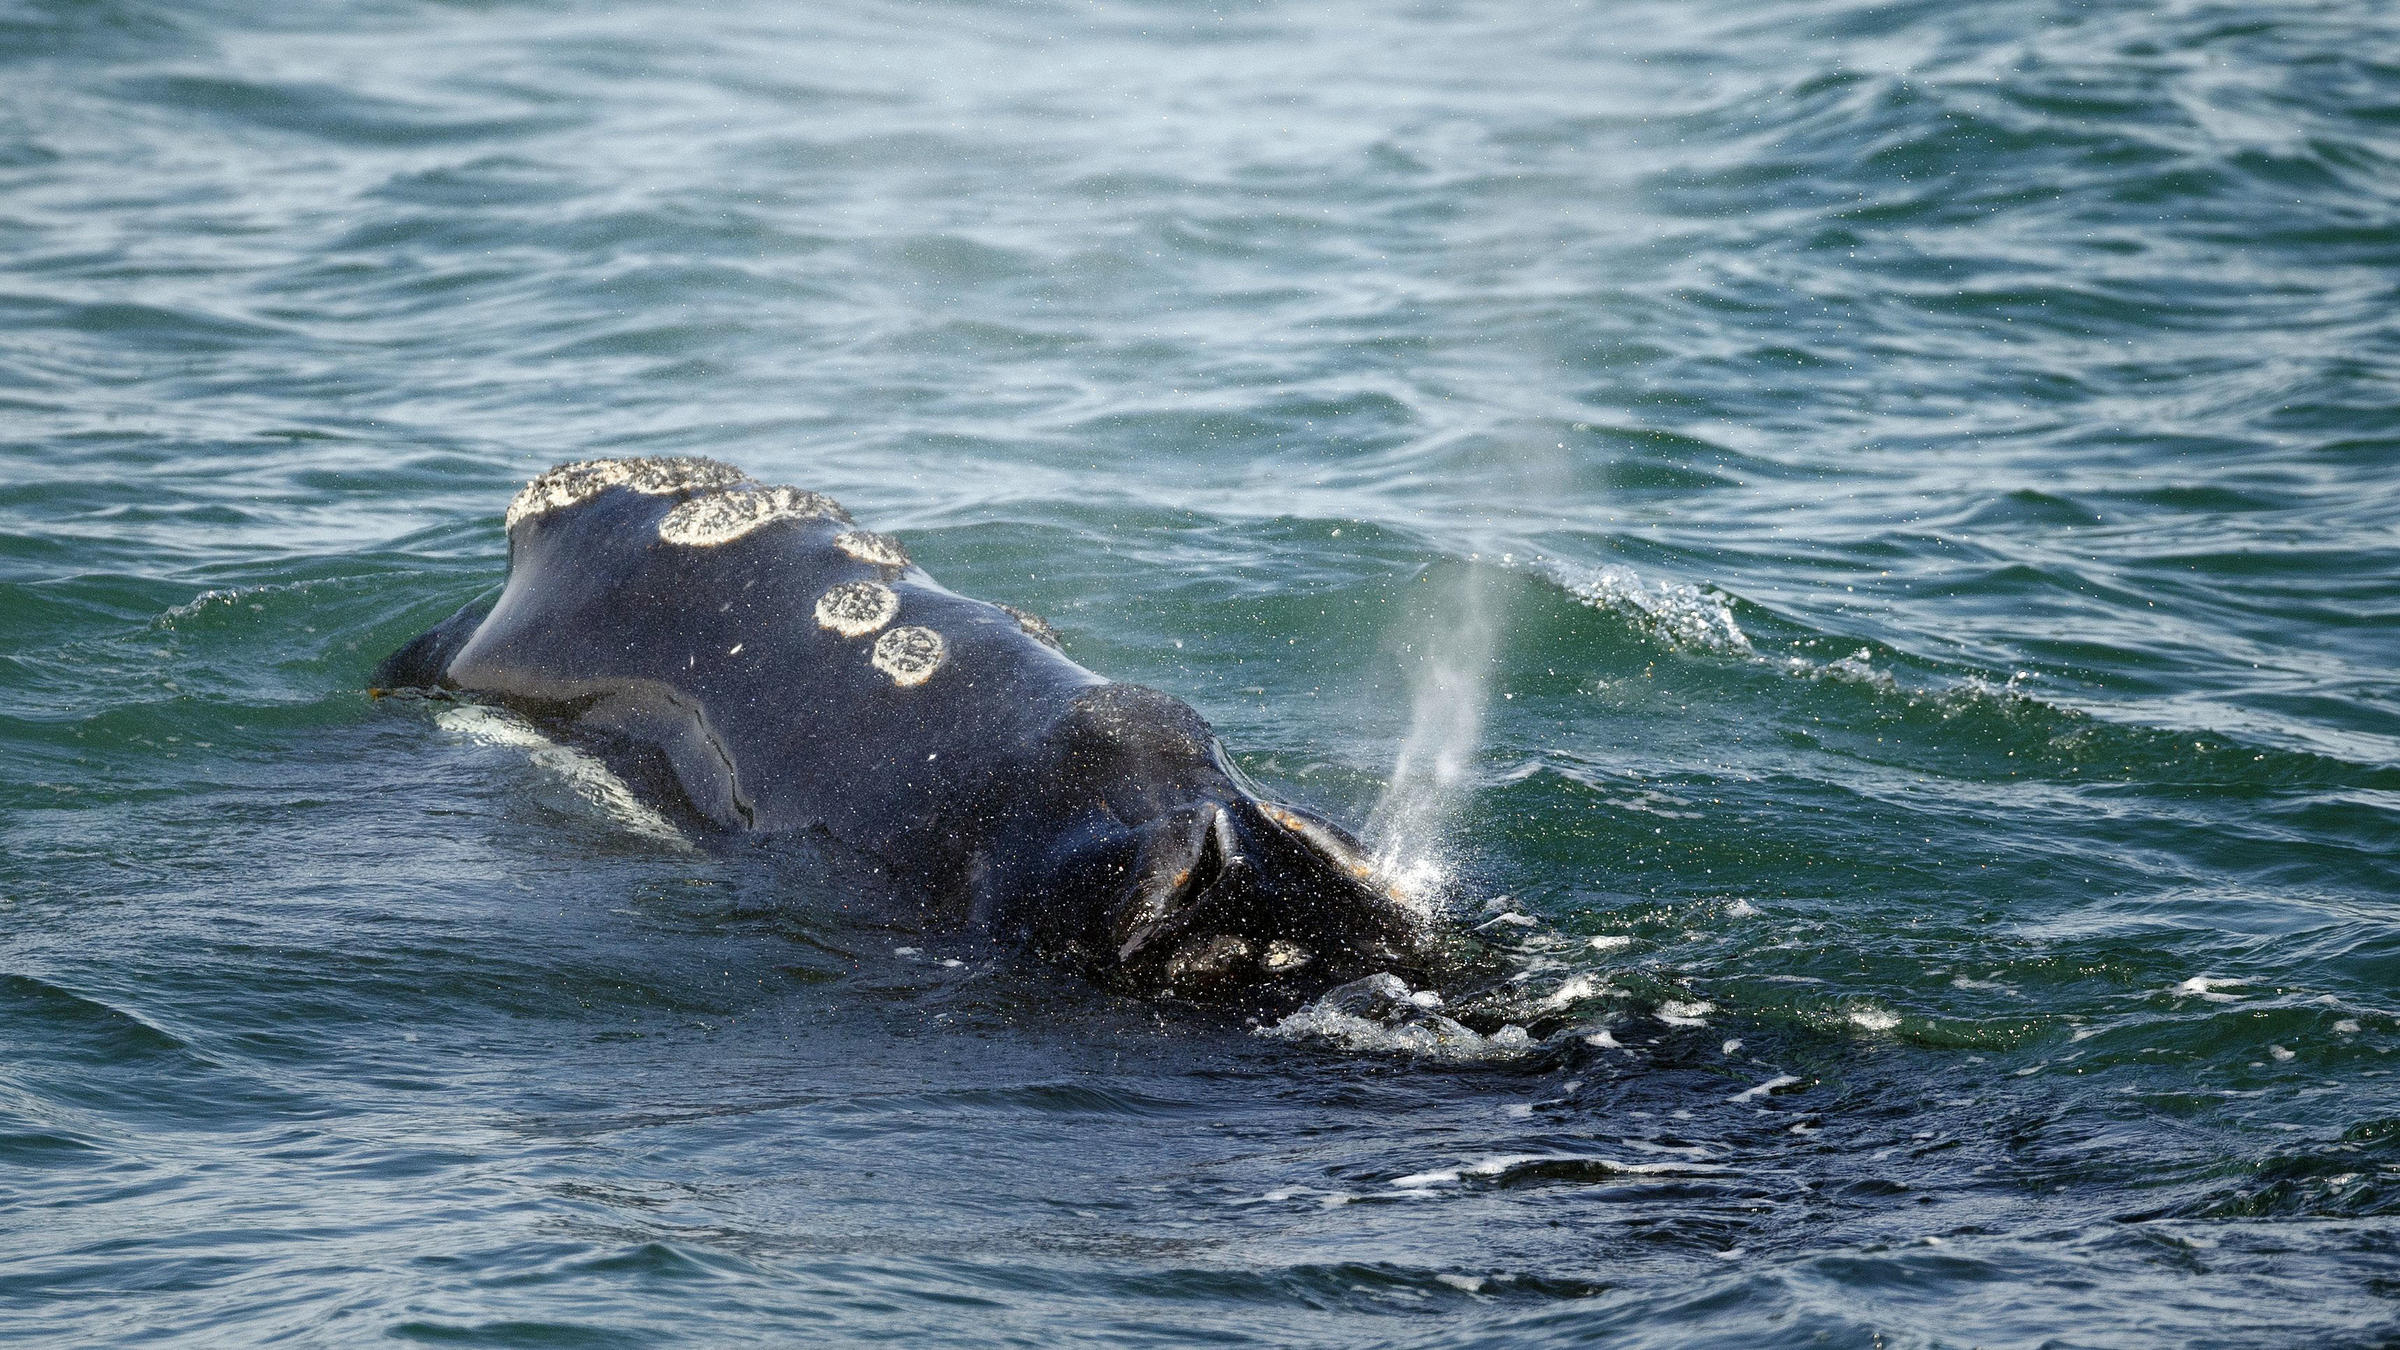 endangered species observers have spotted the first right whale calf